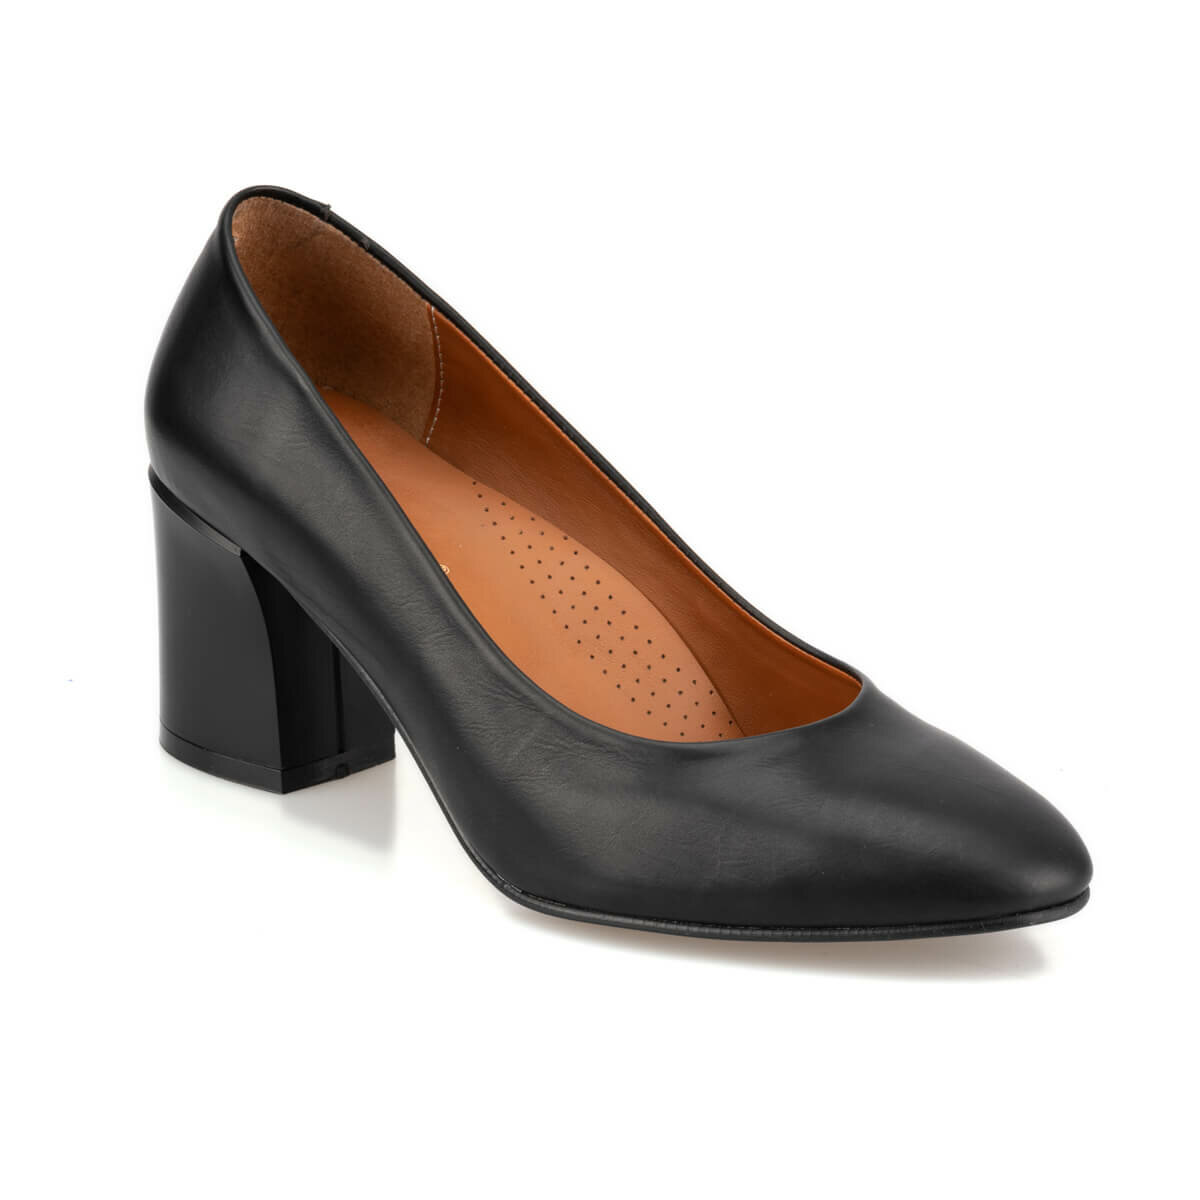 FLO 92.314114.Z Black Women Gova Shoes Polaris